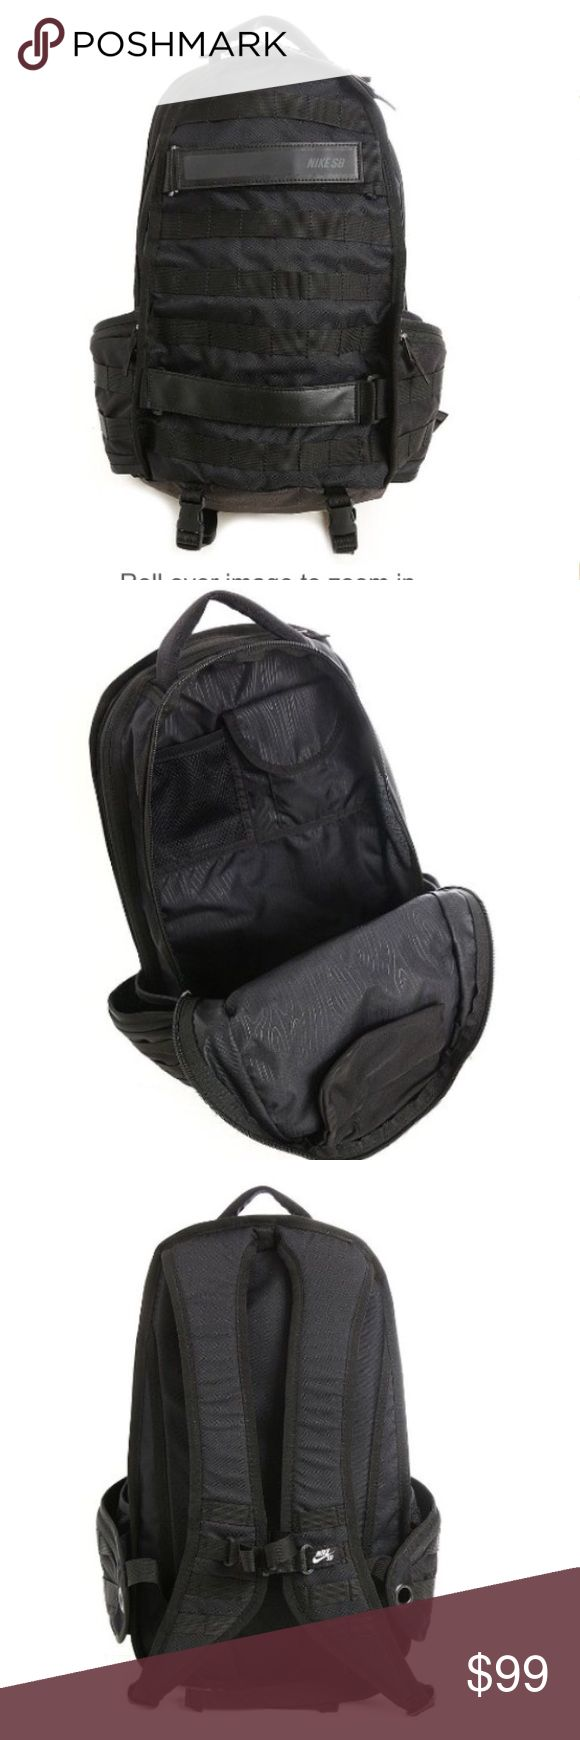 """Nike SB Backpack RPM. Nike SB Backpack RPM. 100% polyester Interior small-item mesh pocket Reflective elements stand out in low light Dimensions: 19"""" H x 12' W x 6"""" D Fabric: 100% polyester Nike Bags Backpacks"""